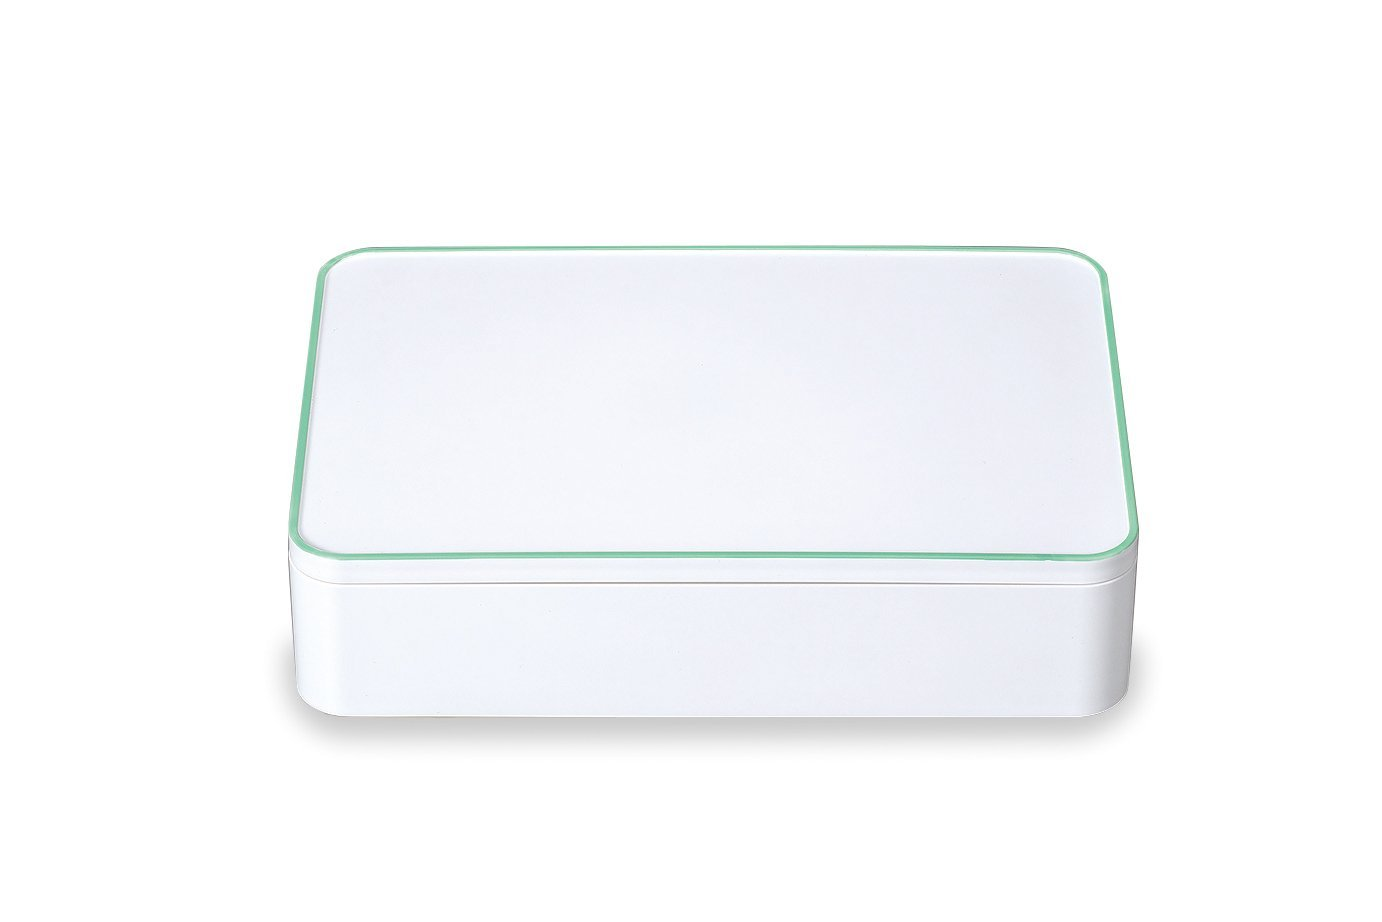 Irodori Shokado Bento Box | Green by Showa - Bento&co Japanese Bento Lunch Boxes and Kitchenware Specialists